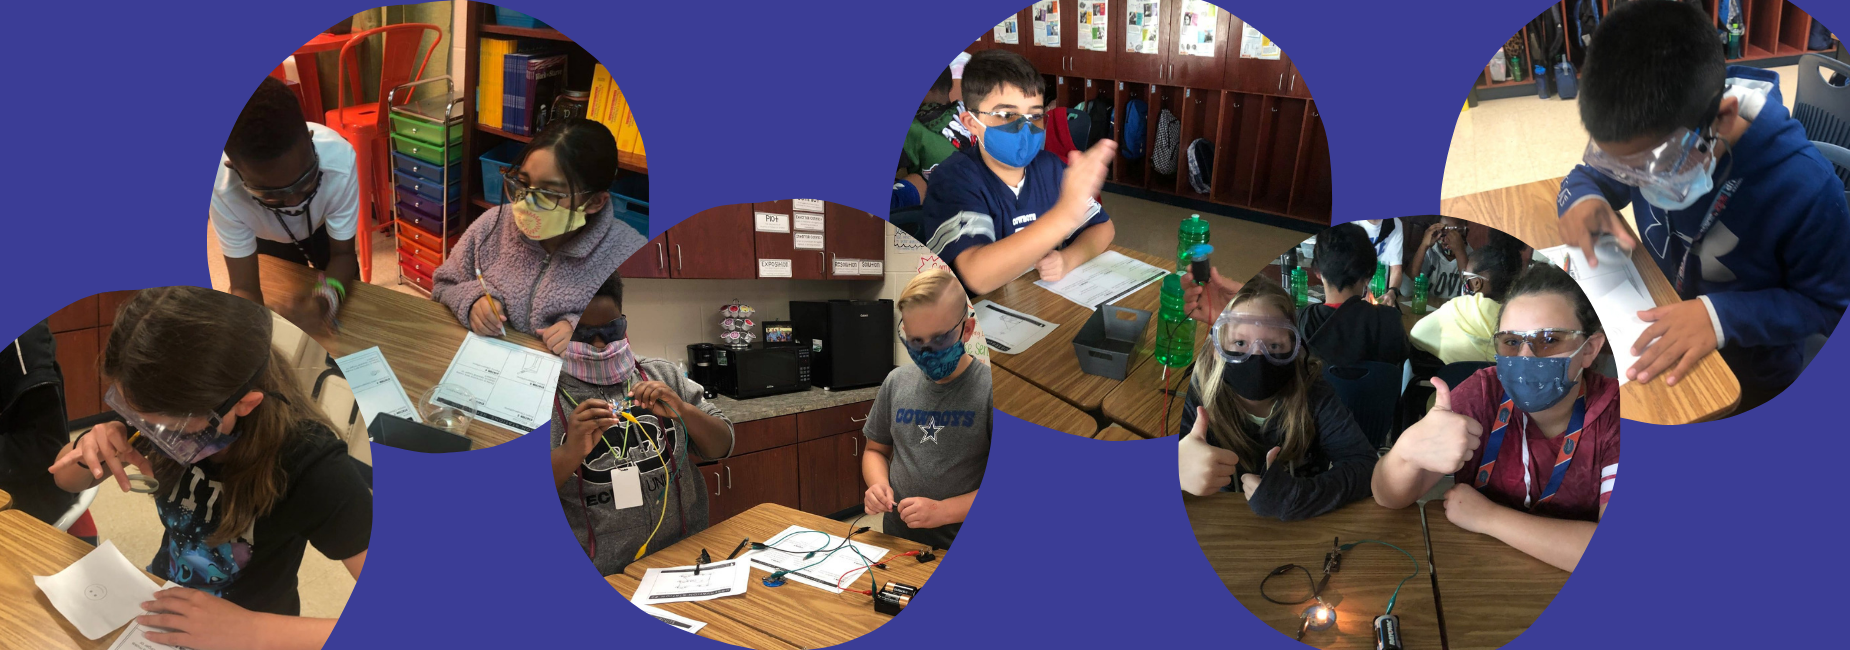 collage of 6 photos showing students busy with science